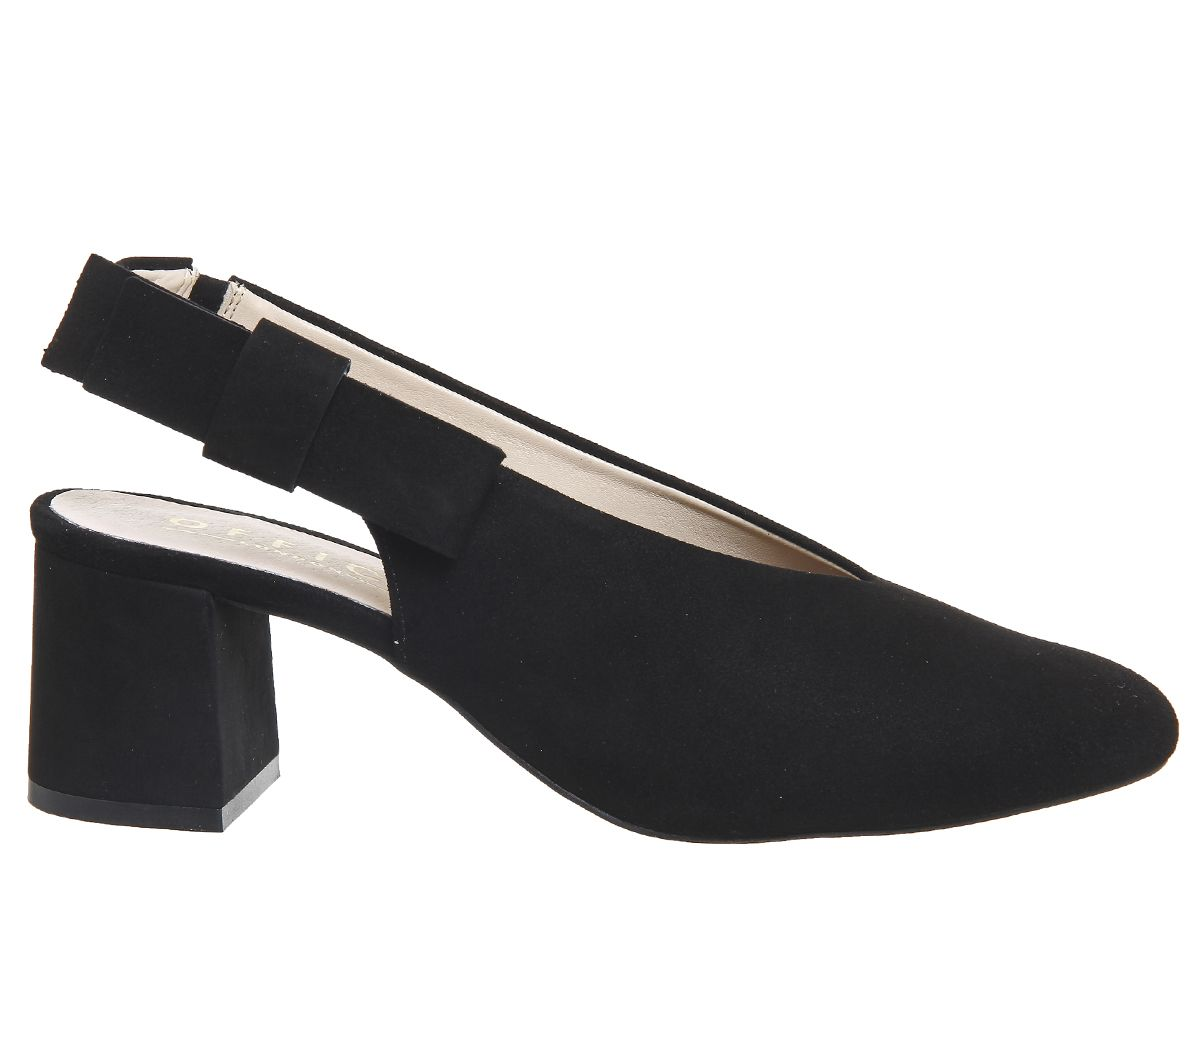 Womens-Office-Magical-Bow-Slingback-Heels-Black-Suede-Heels thumbnail 6